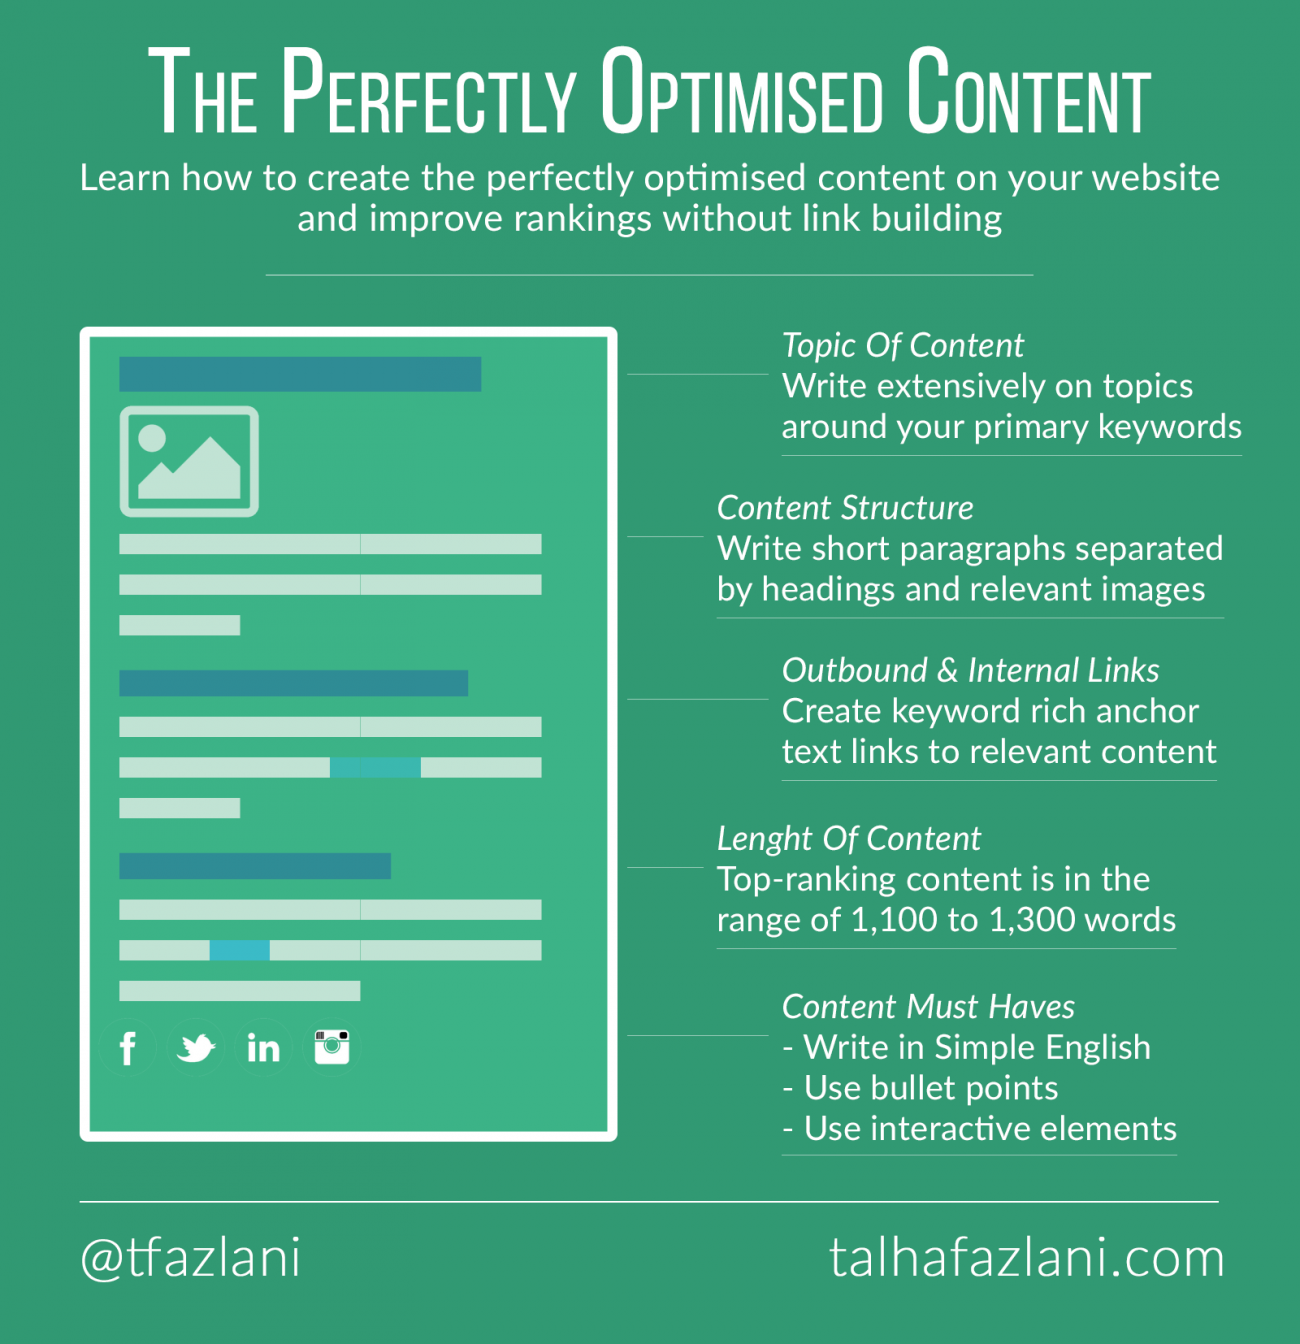 Creating the perfectly optimised content